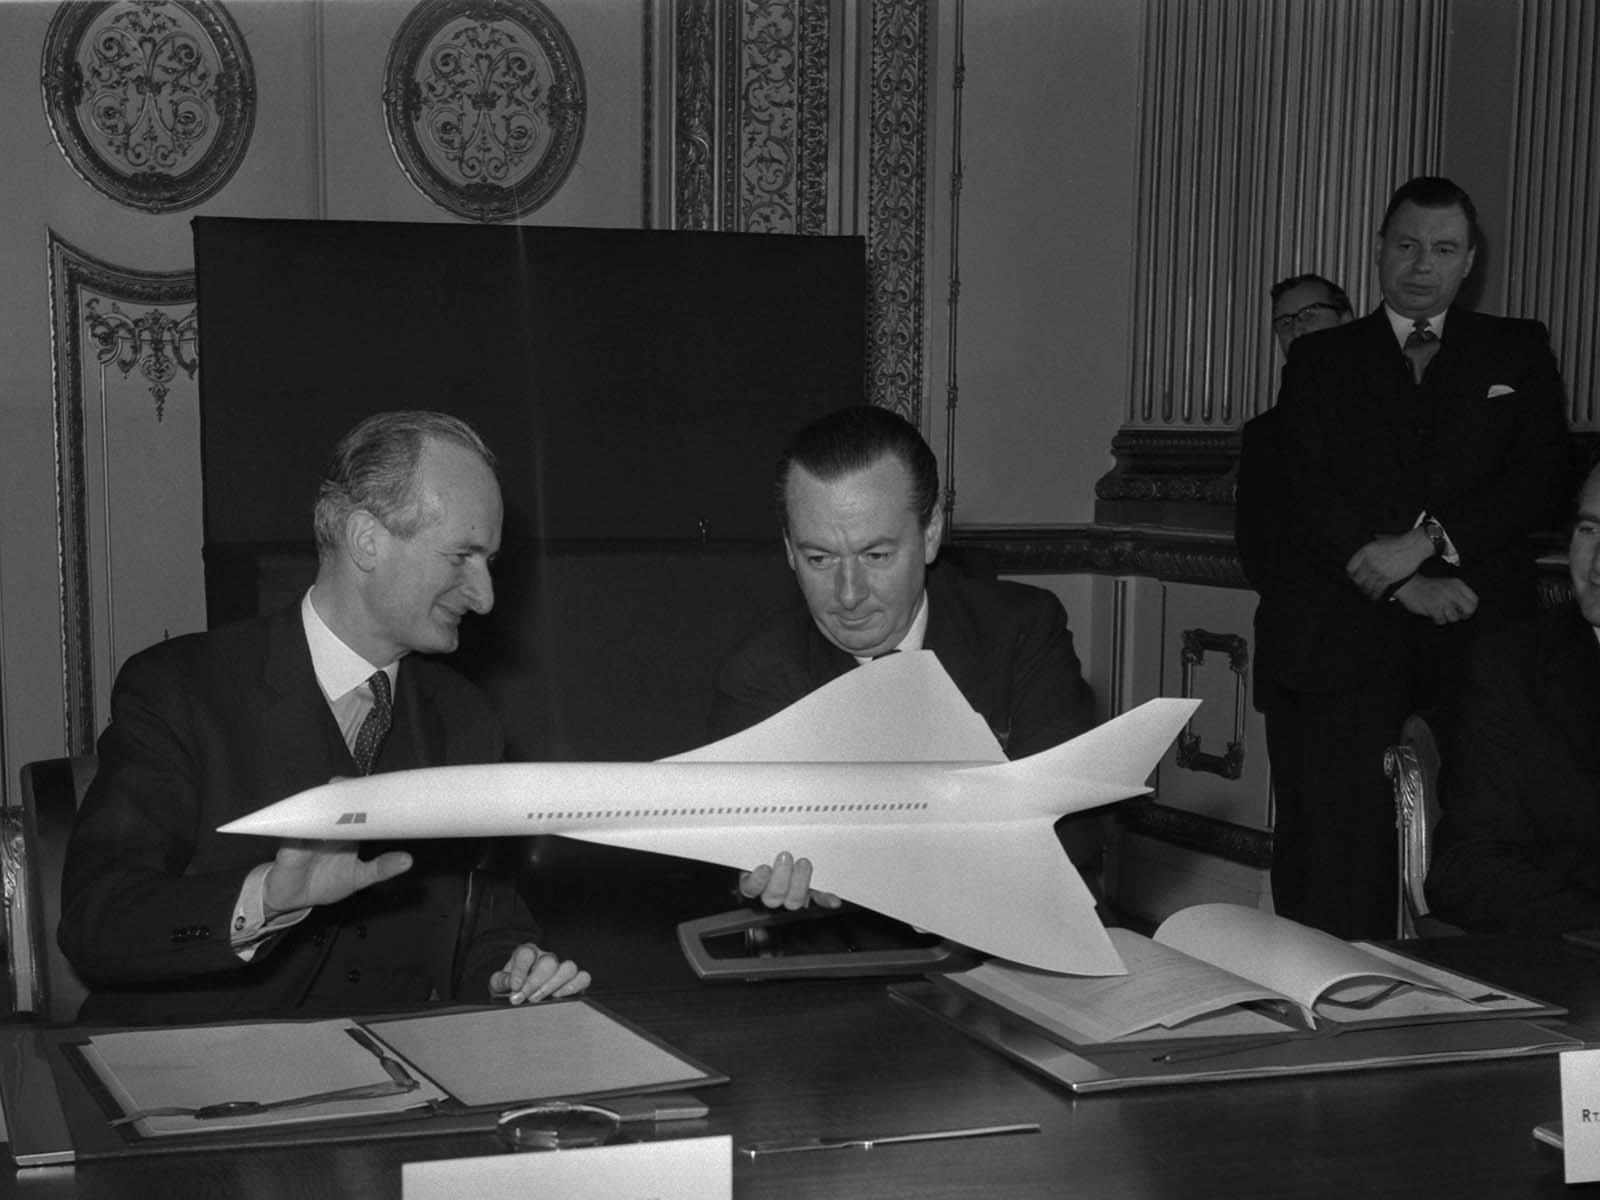 On November 29, 1962, the governments of France and Great Britain signed a concord agreement to build a supersonic jetliner, hence the name of the plane that resulted: Concorde.